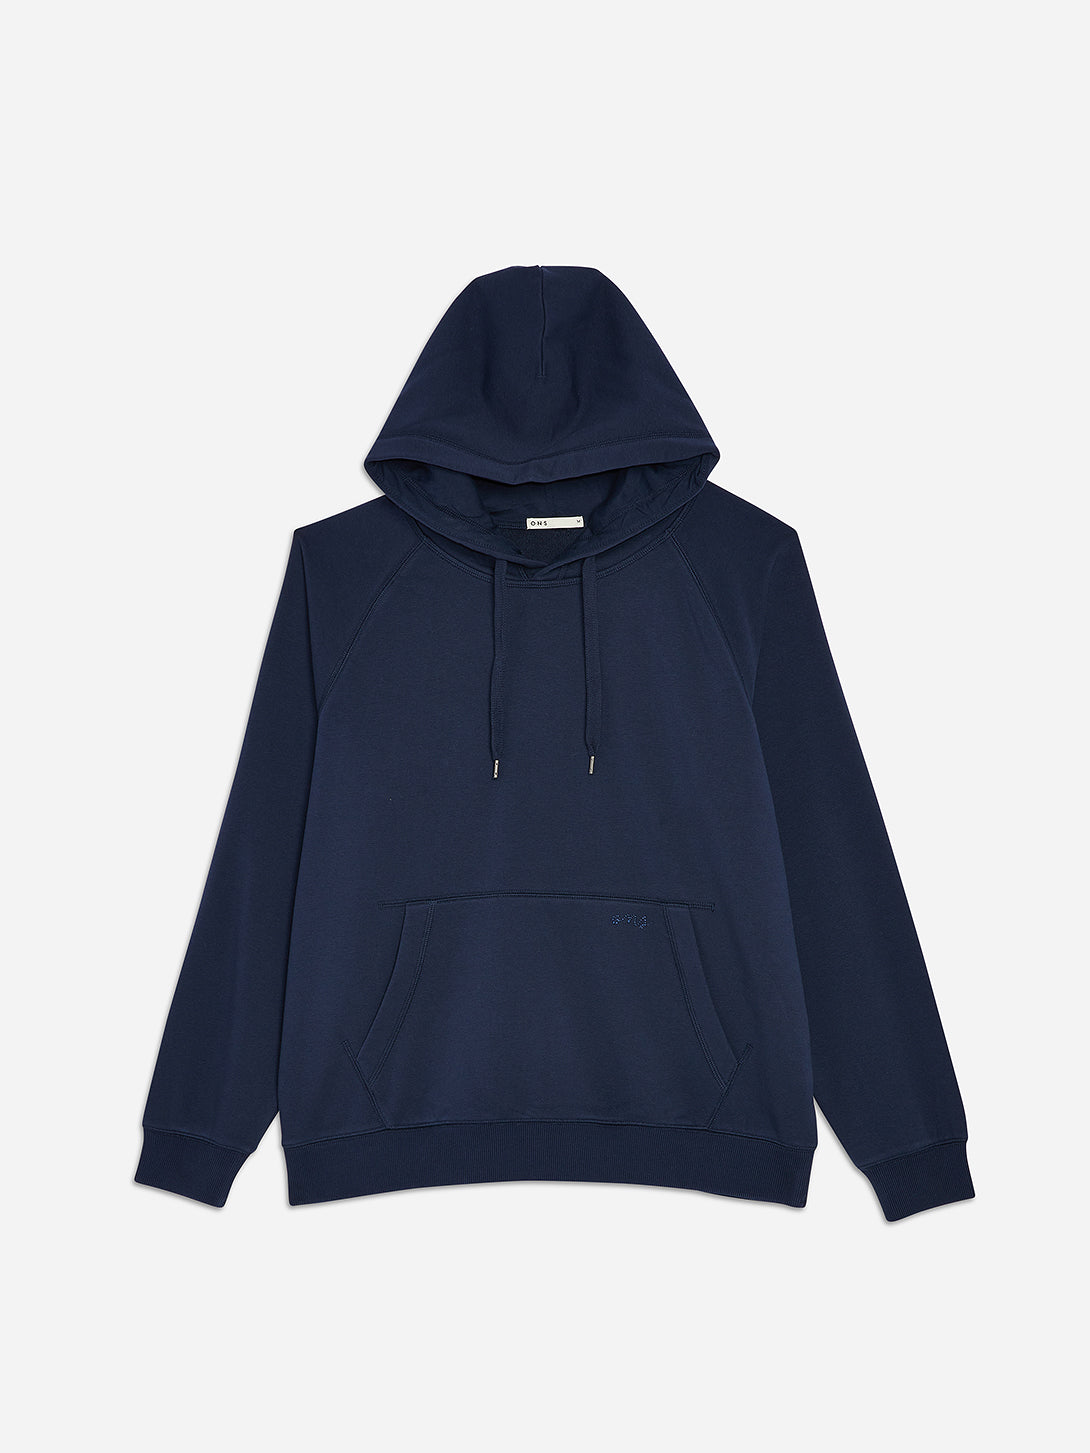 ONS Clothing Men's Harper Hoodie in Dark Navy